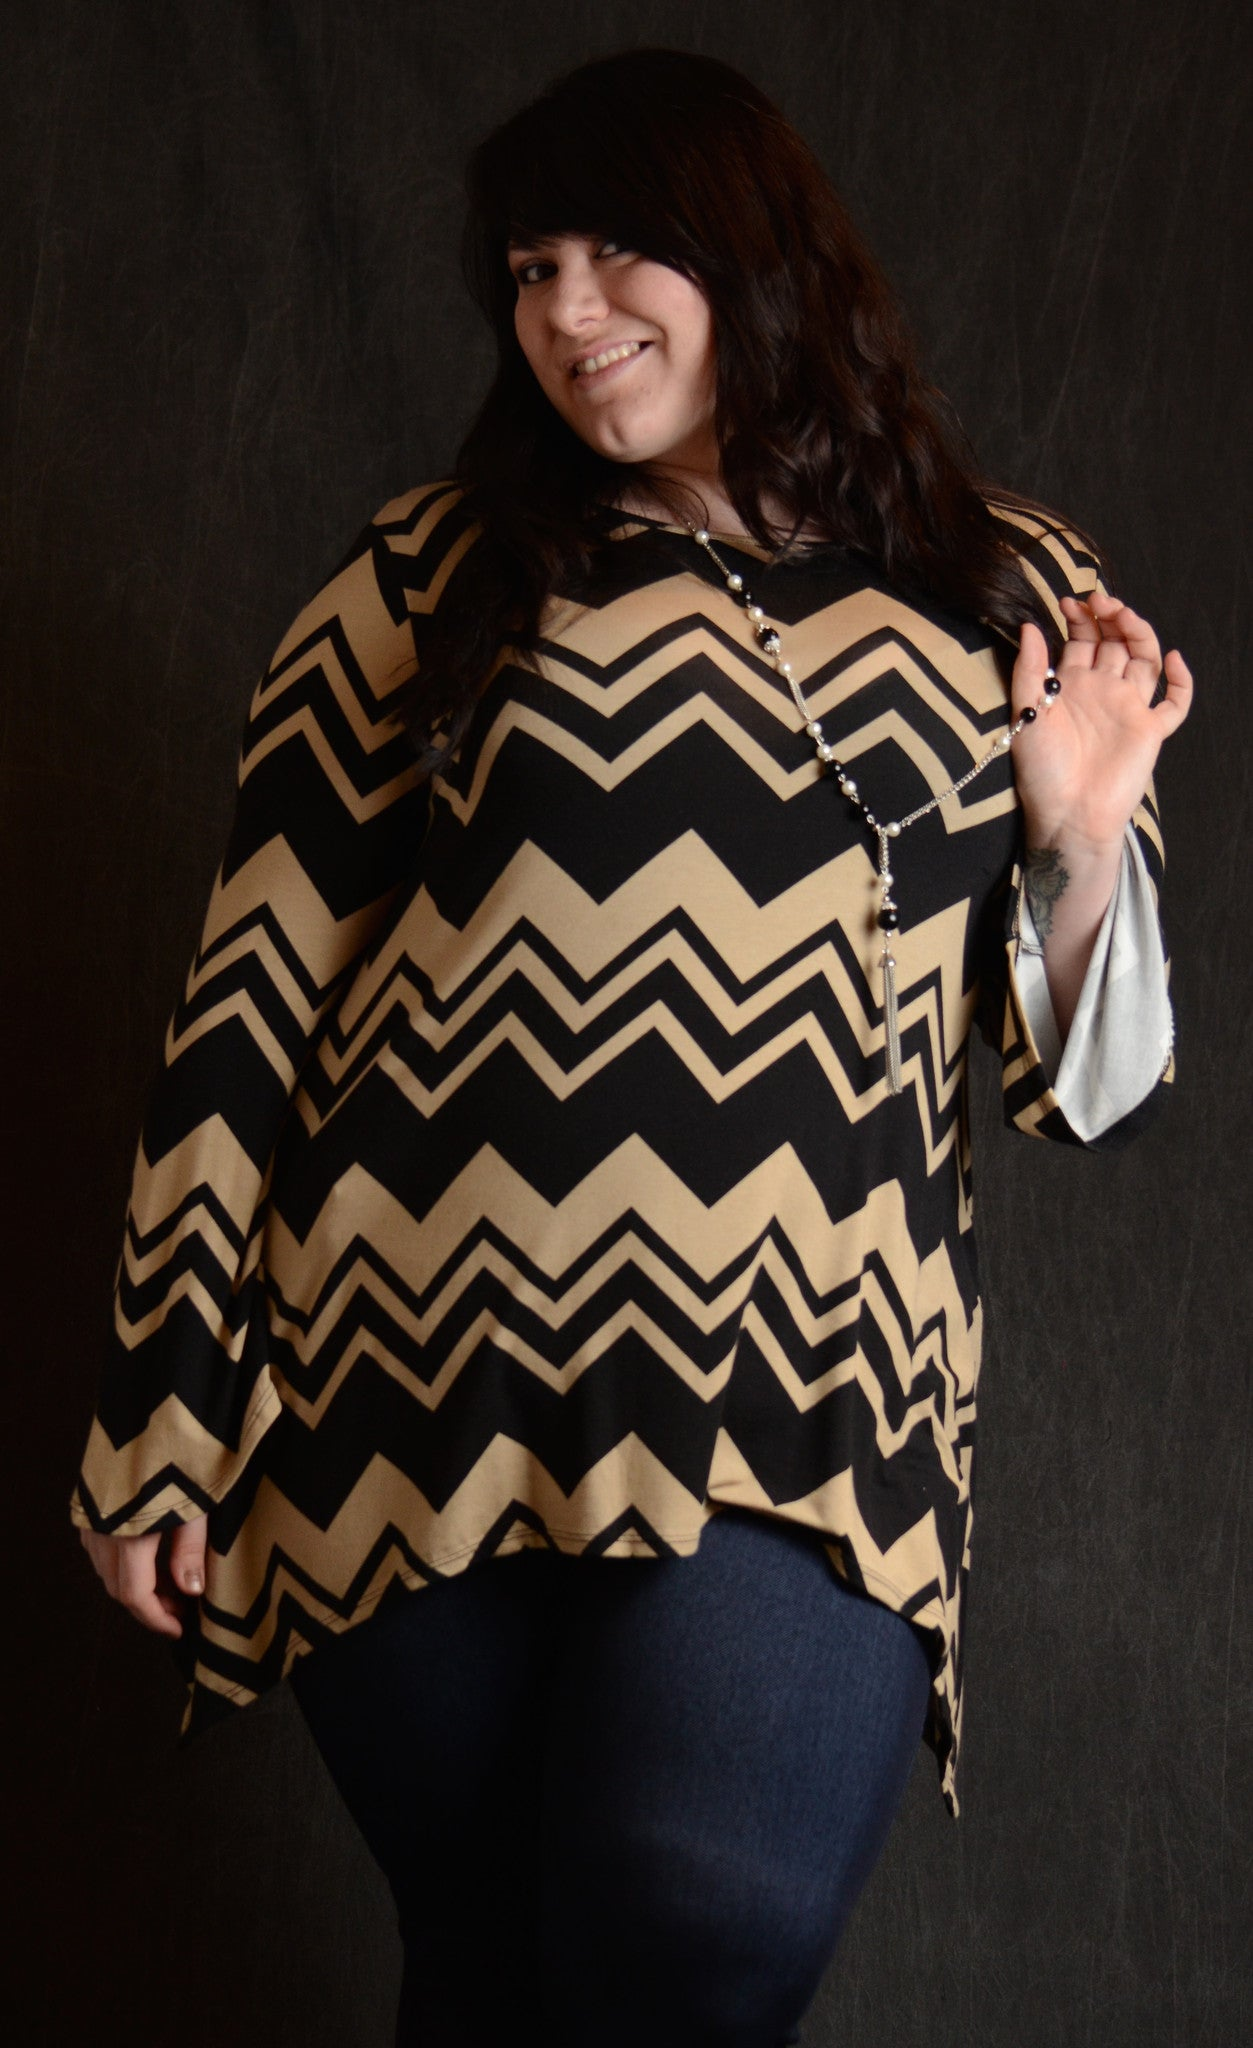 Chevron Wide-Stripe Tunic - More Colors! - www.mycurvystore.com - Curvy Boutique - Plus Size